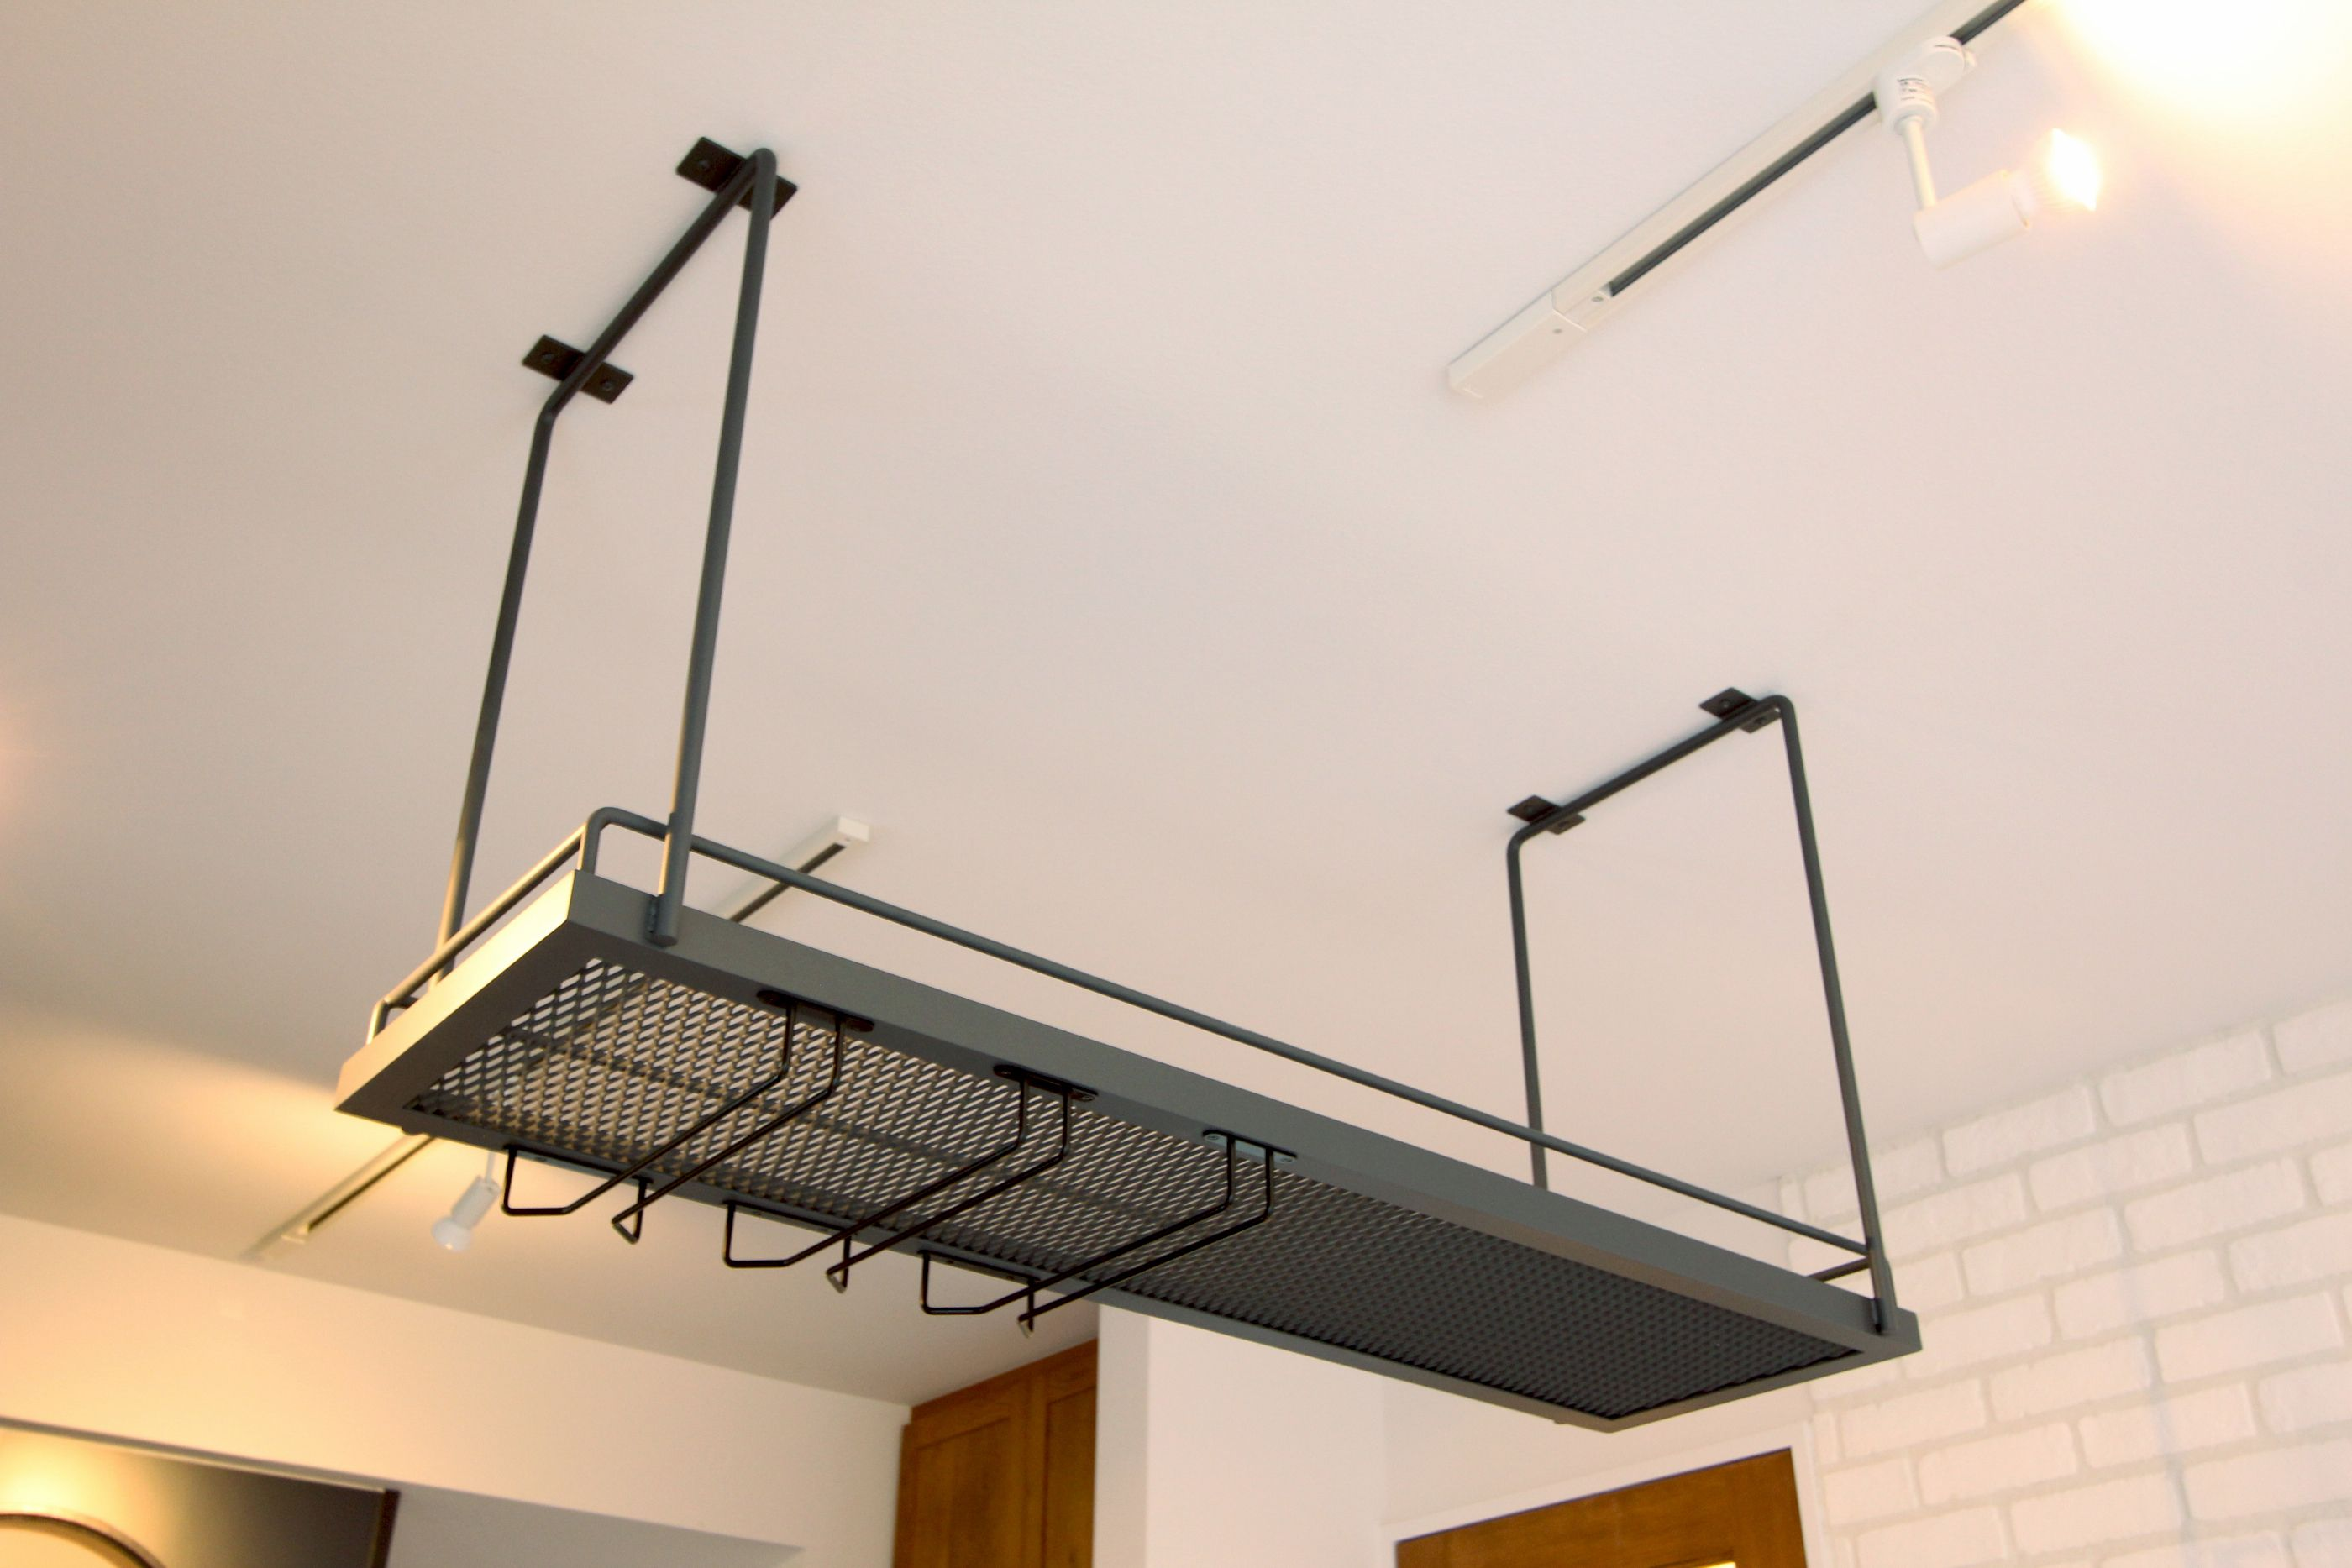 Industrial Product Parts Kitchen Desk Counter Shelf プロダクト